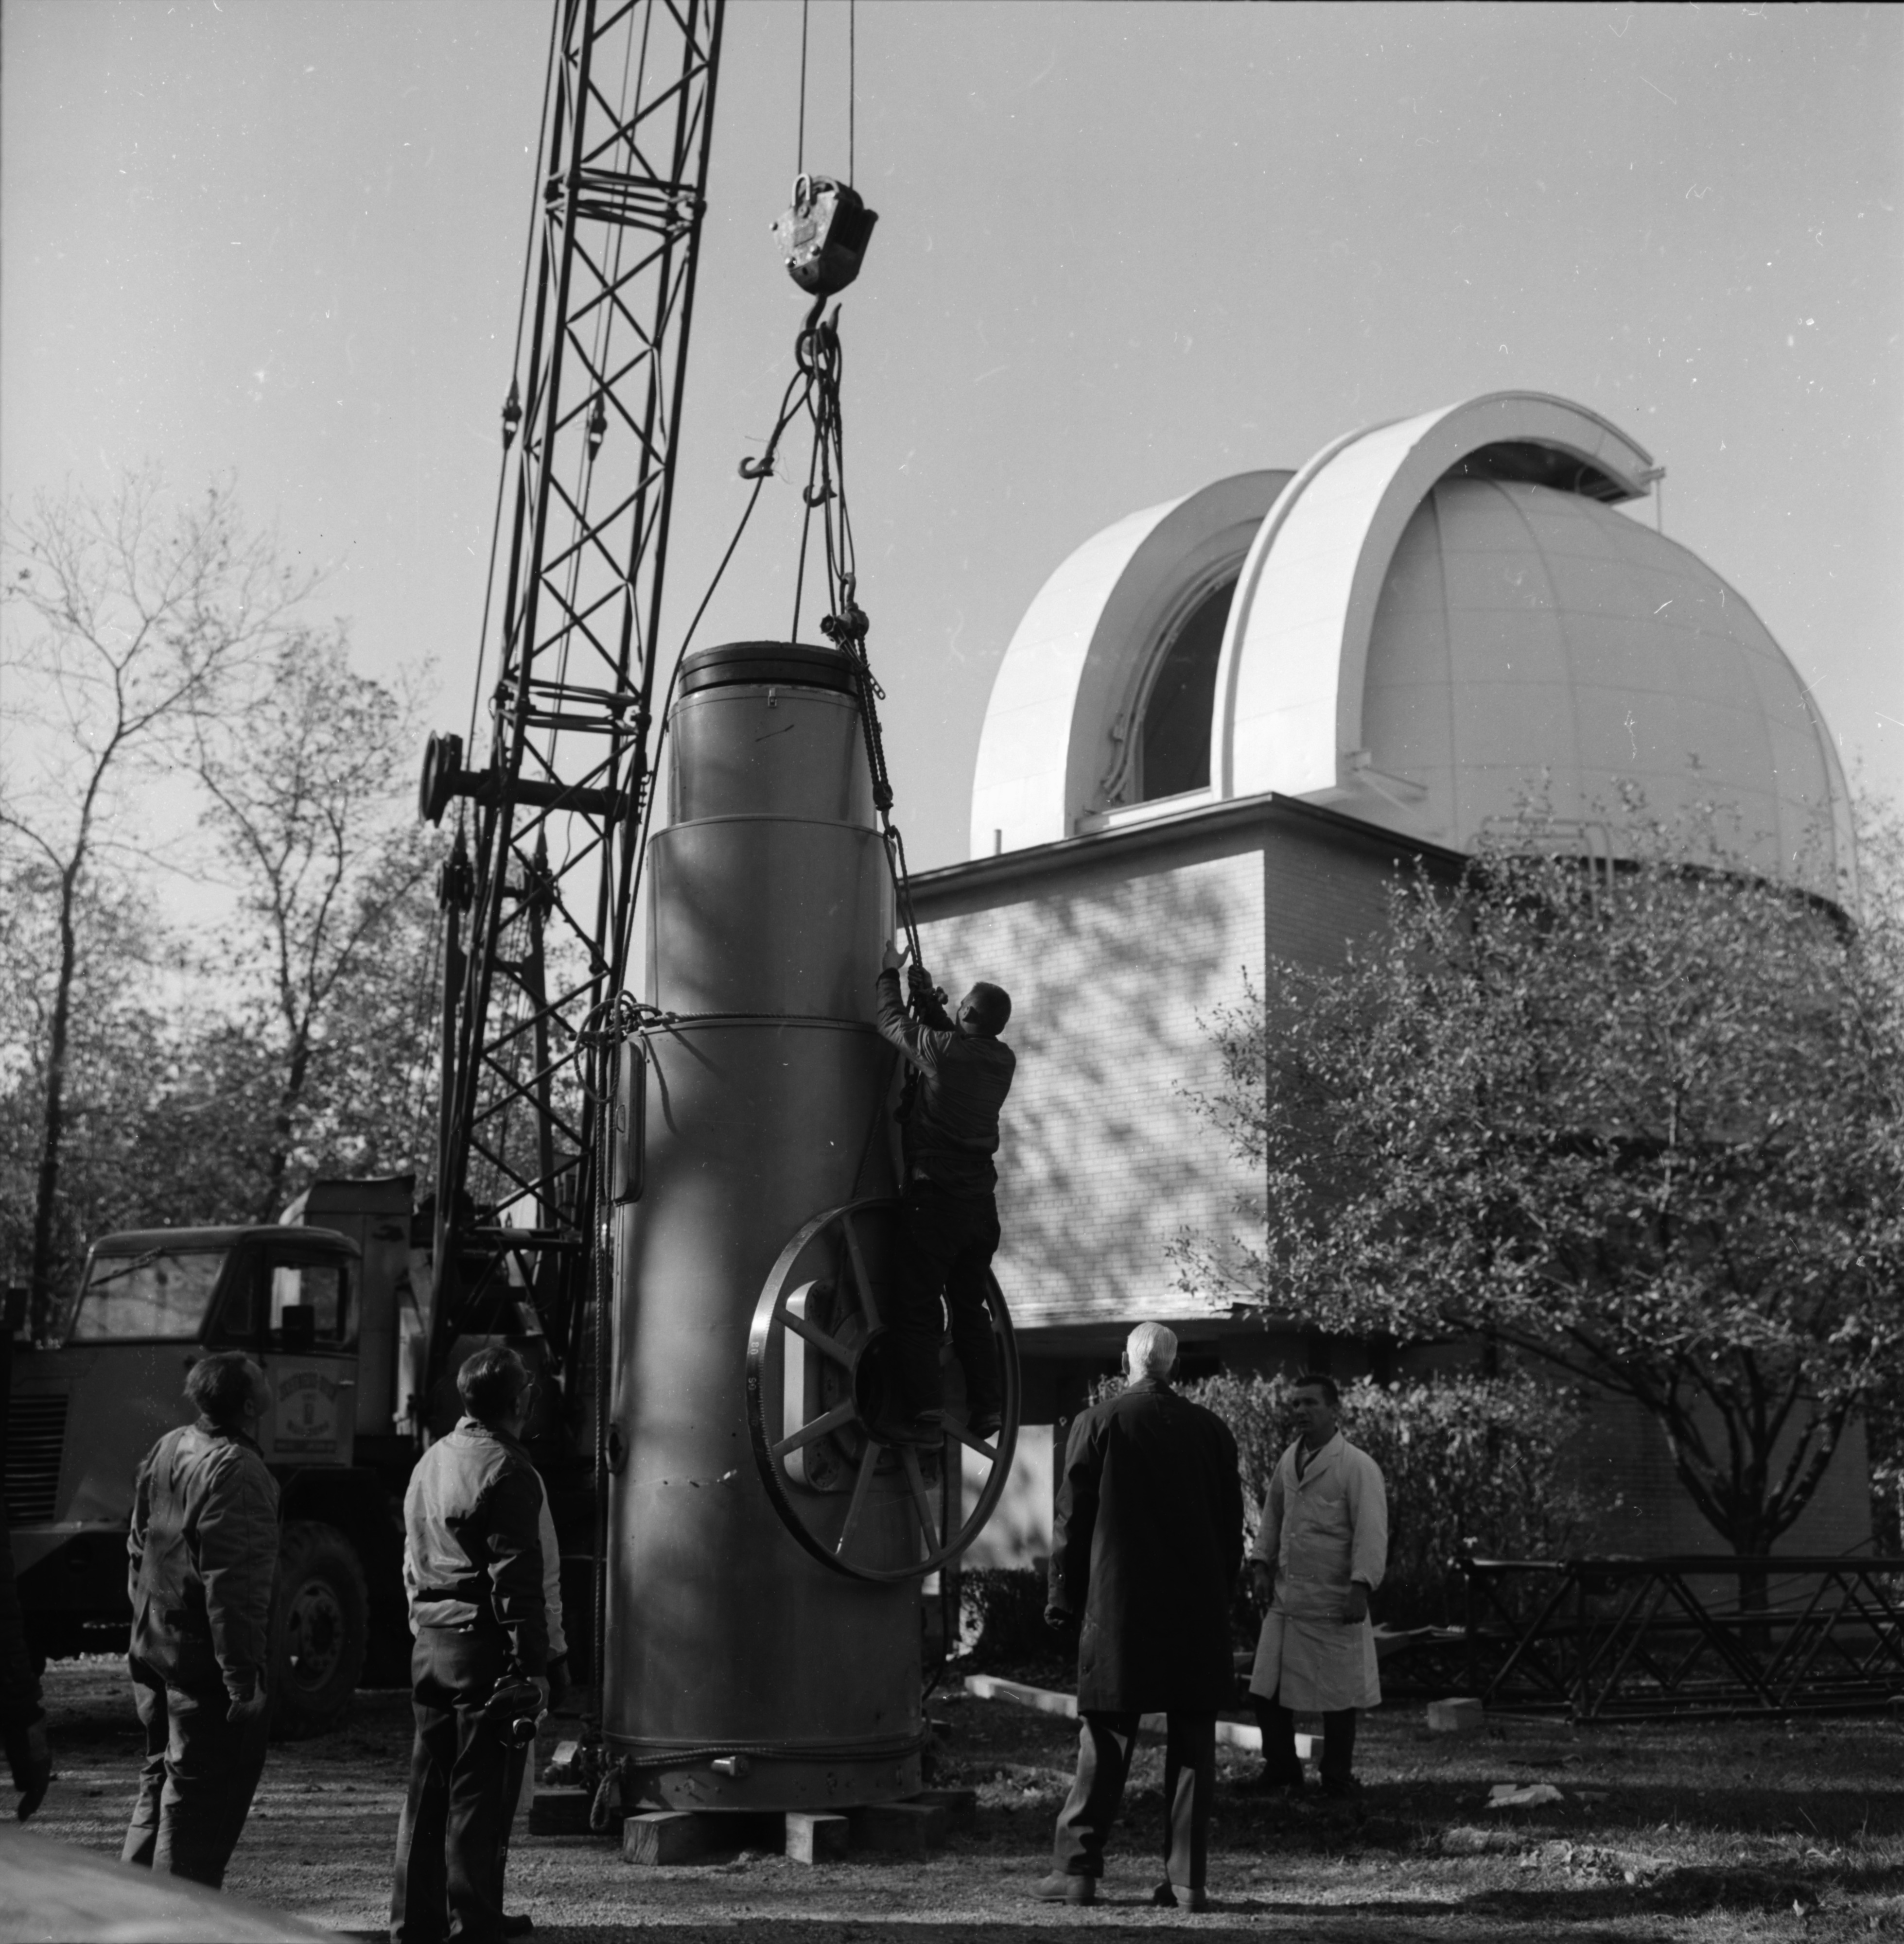 Peach Mountain telescope being sent to South America, October 1966 image